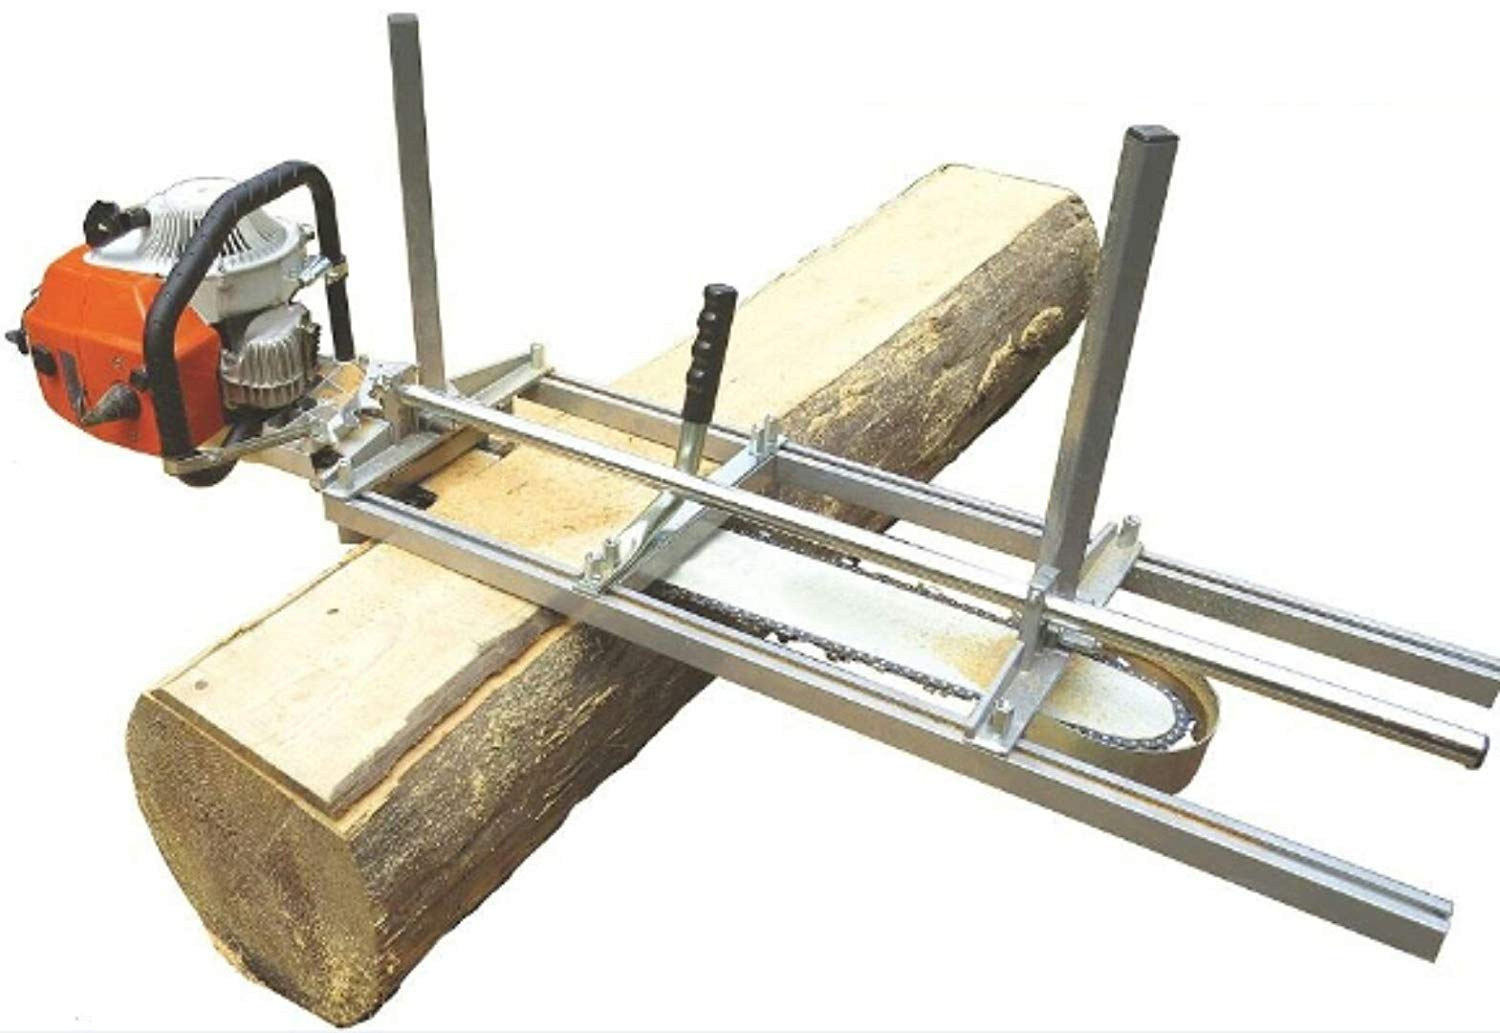 TTF Chainsaw Mill Attachment Chainsaw Milling Planking Milling Bar Planking Cutting Guide Bar Chainsaw Mill Guide Sawmill For Chainsaw Portable Chain Sawmill Attachment (14''-36'')